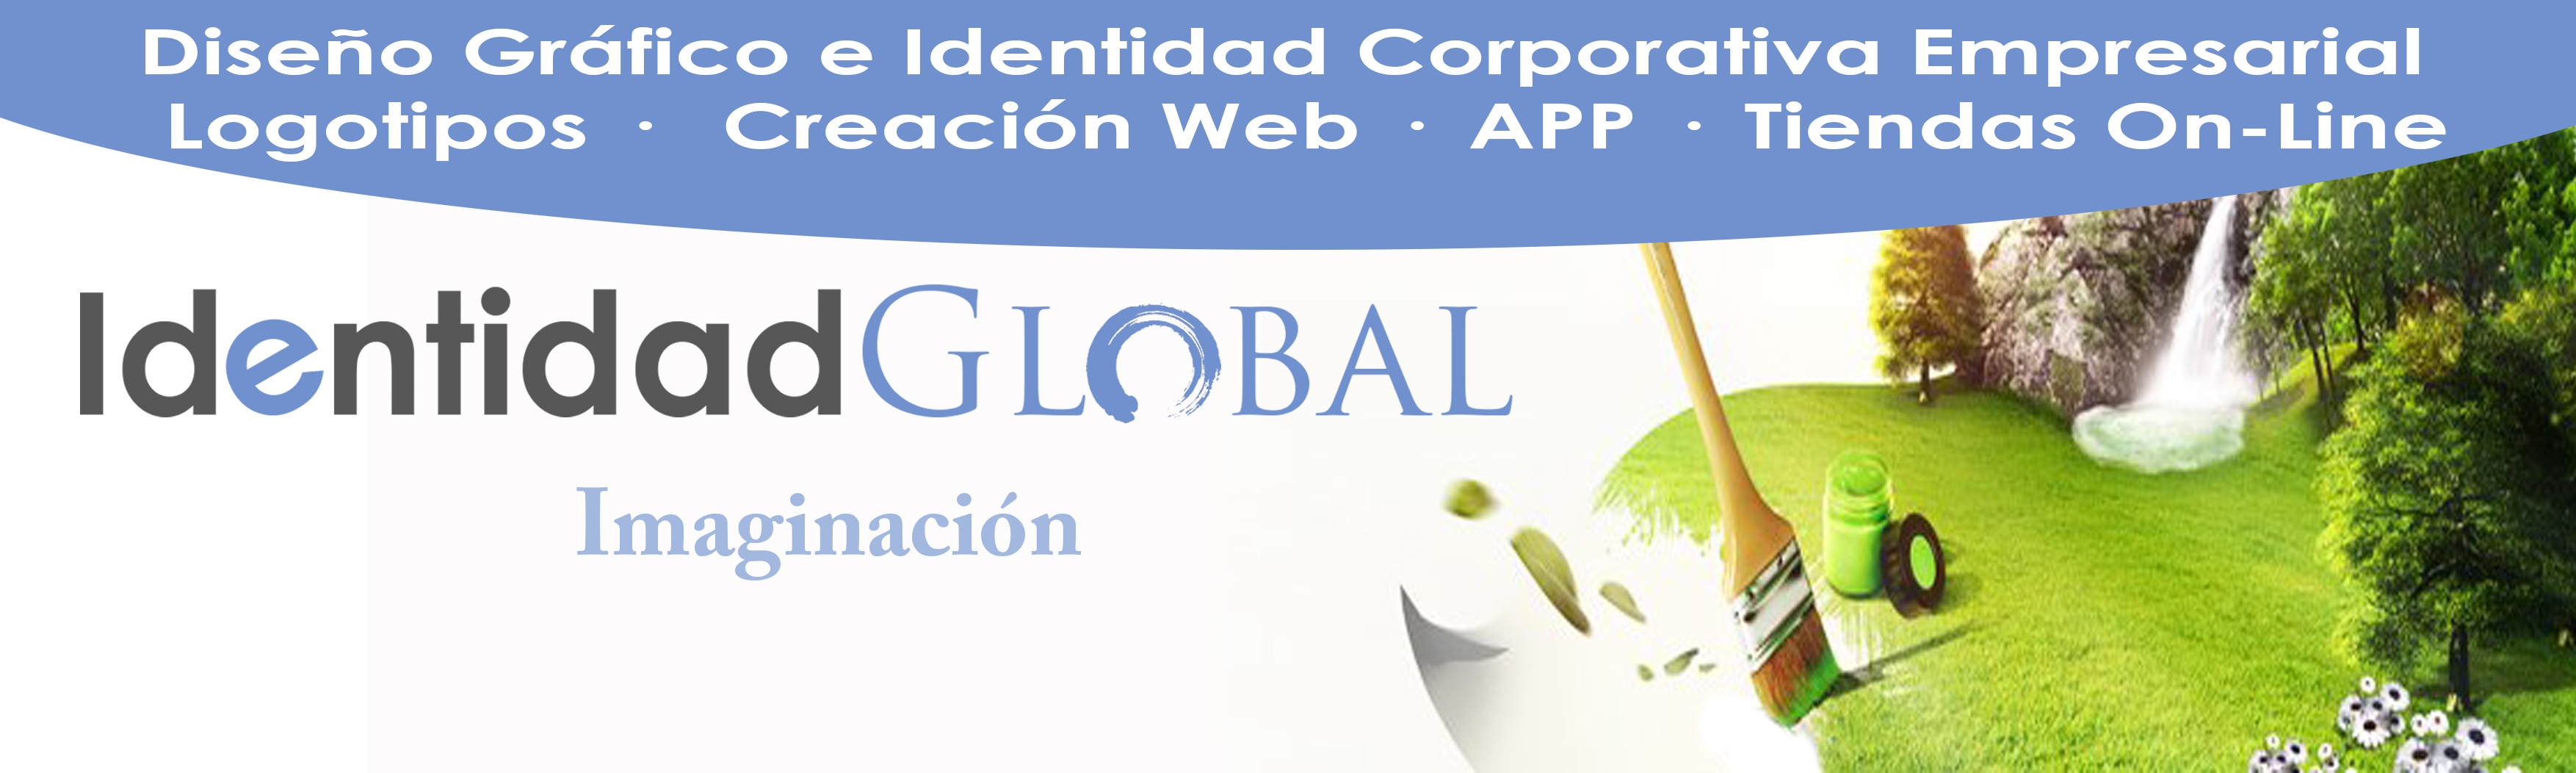 Identidad Global Imaginacion